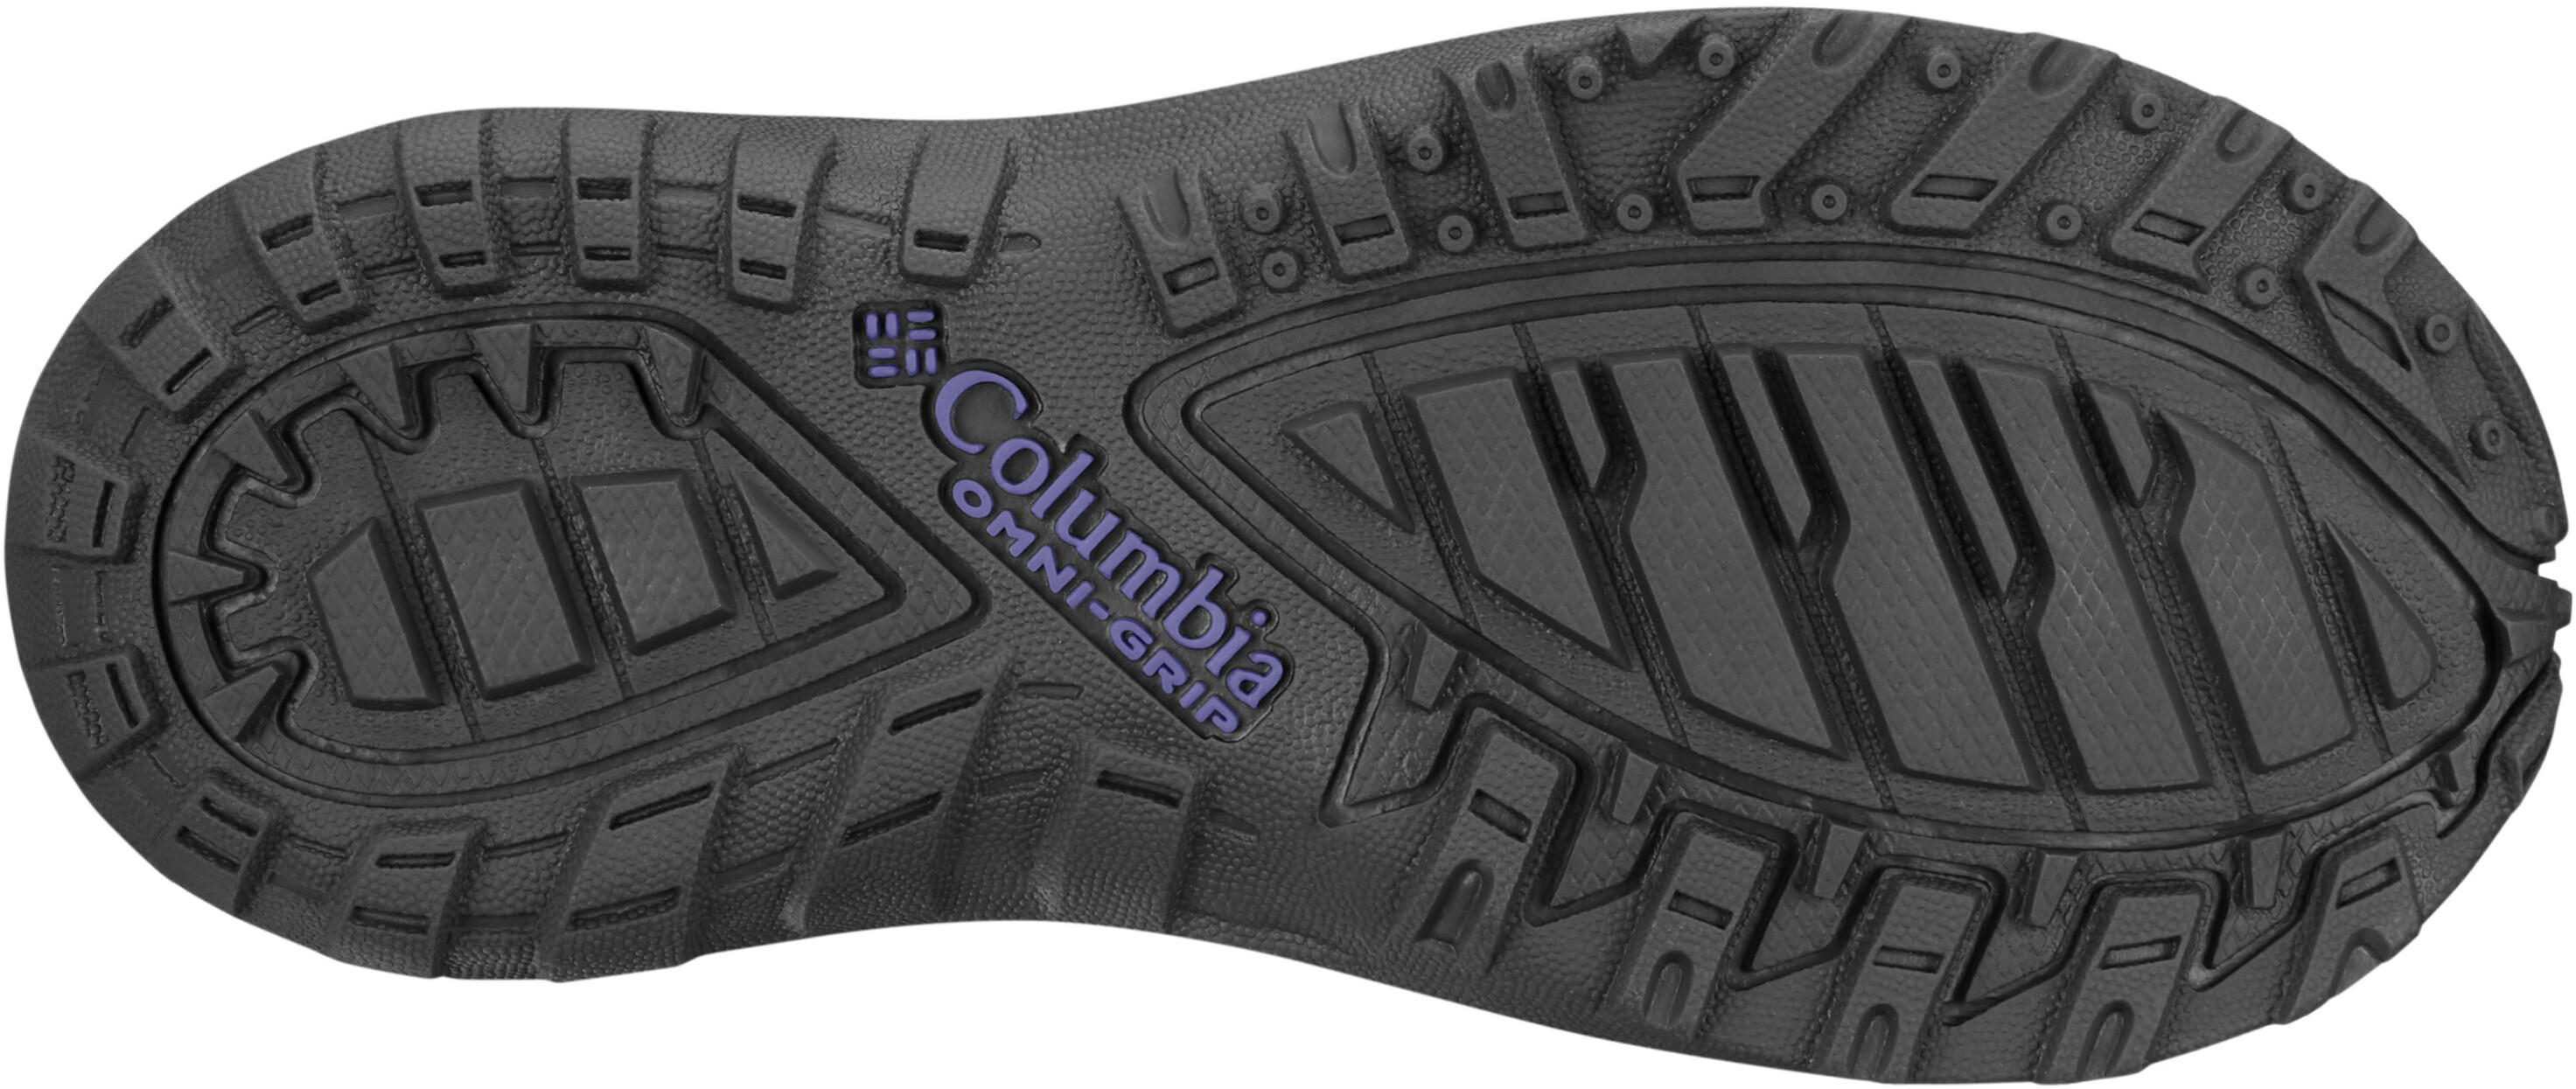 8d8fcb252ea Columbia Youth Redmond Shoes Children grey purple at Addnature.co.uk